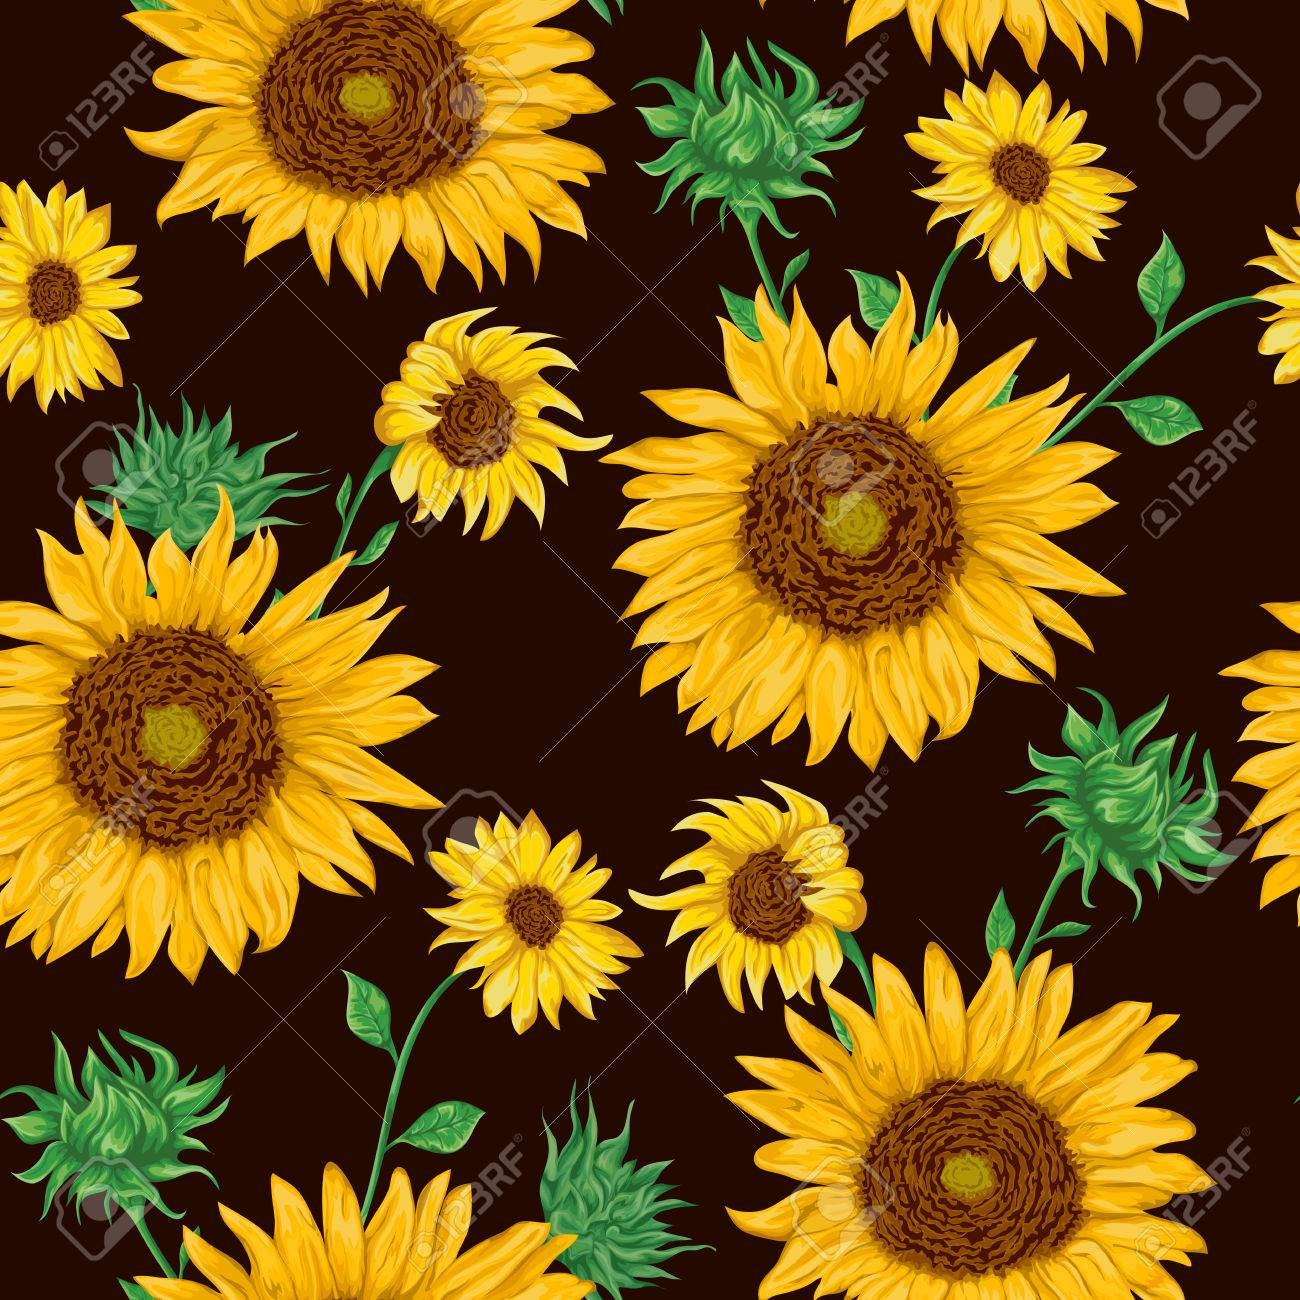 Seamless pattern with sunflowers on black background. Collection decorative floral design elements. Flowers, buds and leaf. Vintage hand drawn vector illustration in watercolor style. - 68605839